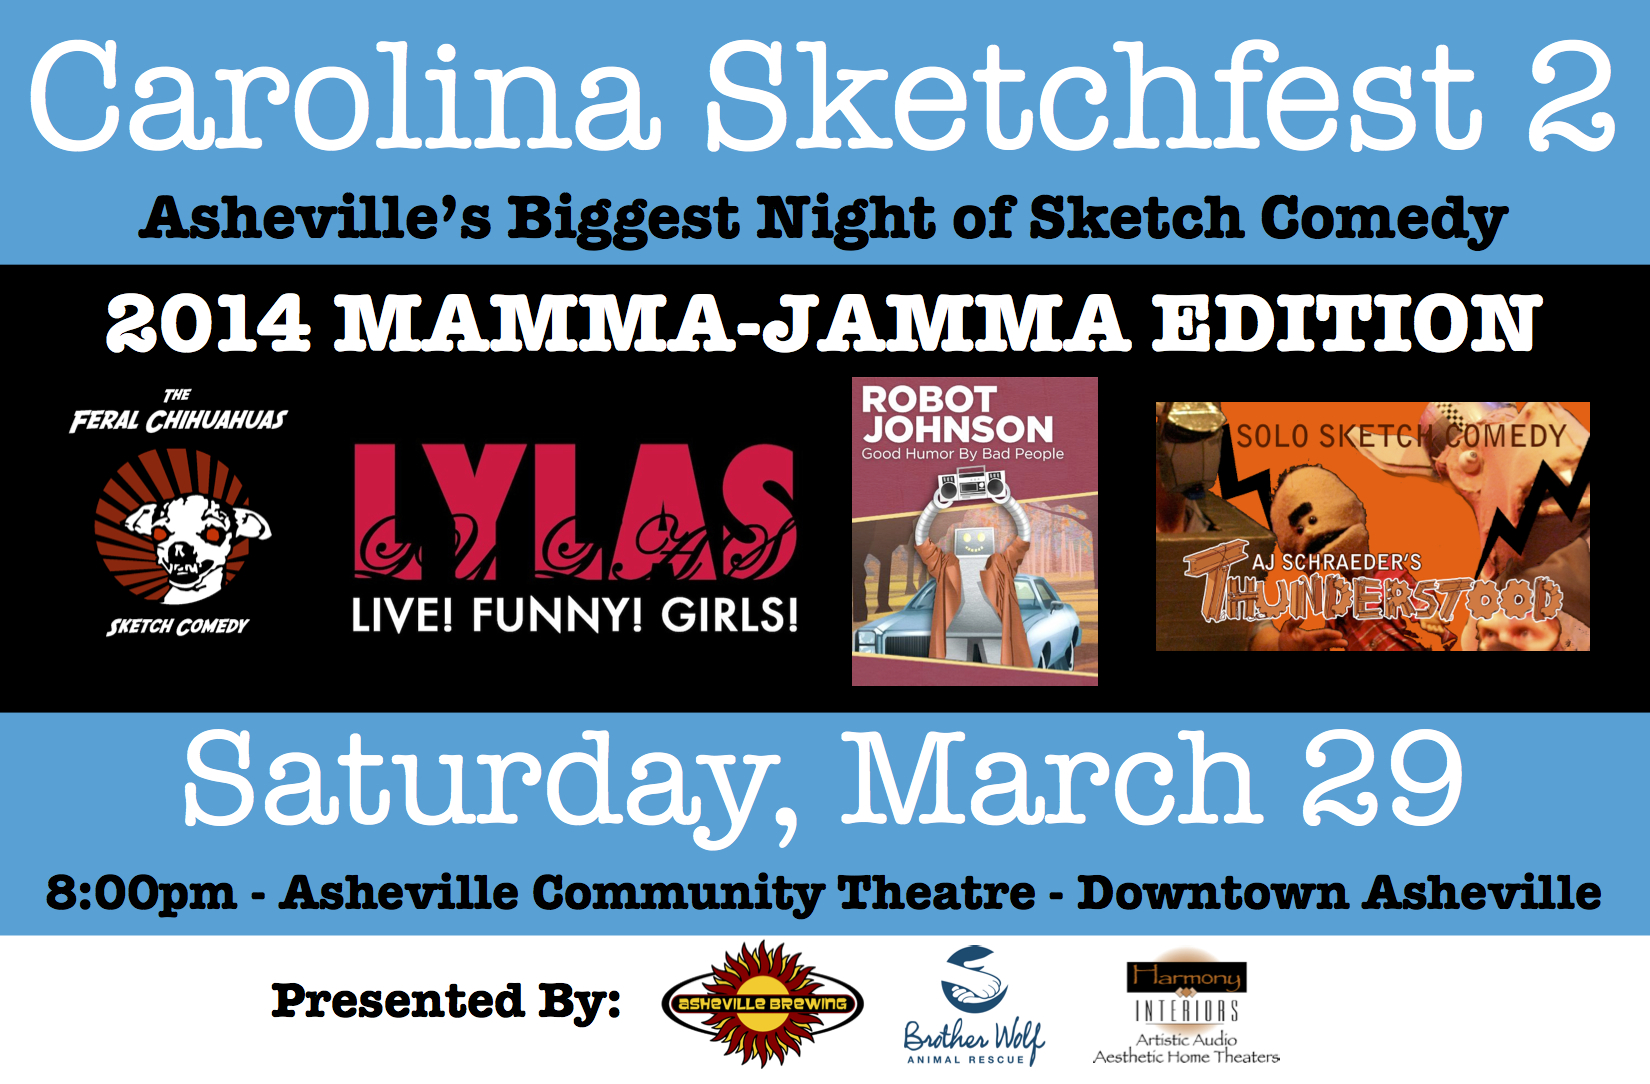 WIN Two tickets to Carolina Sketchfest, feat. Feral Chihuahuas, LYLAS, Robot Johnson, Thunderstood